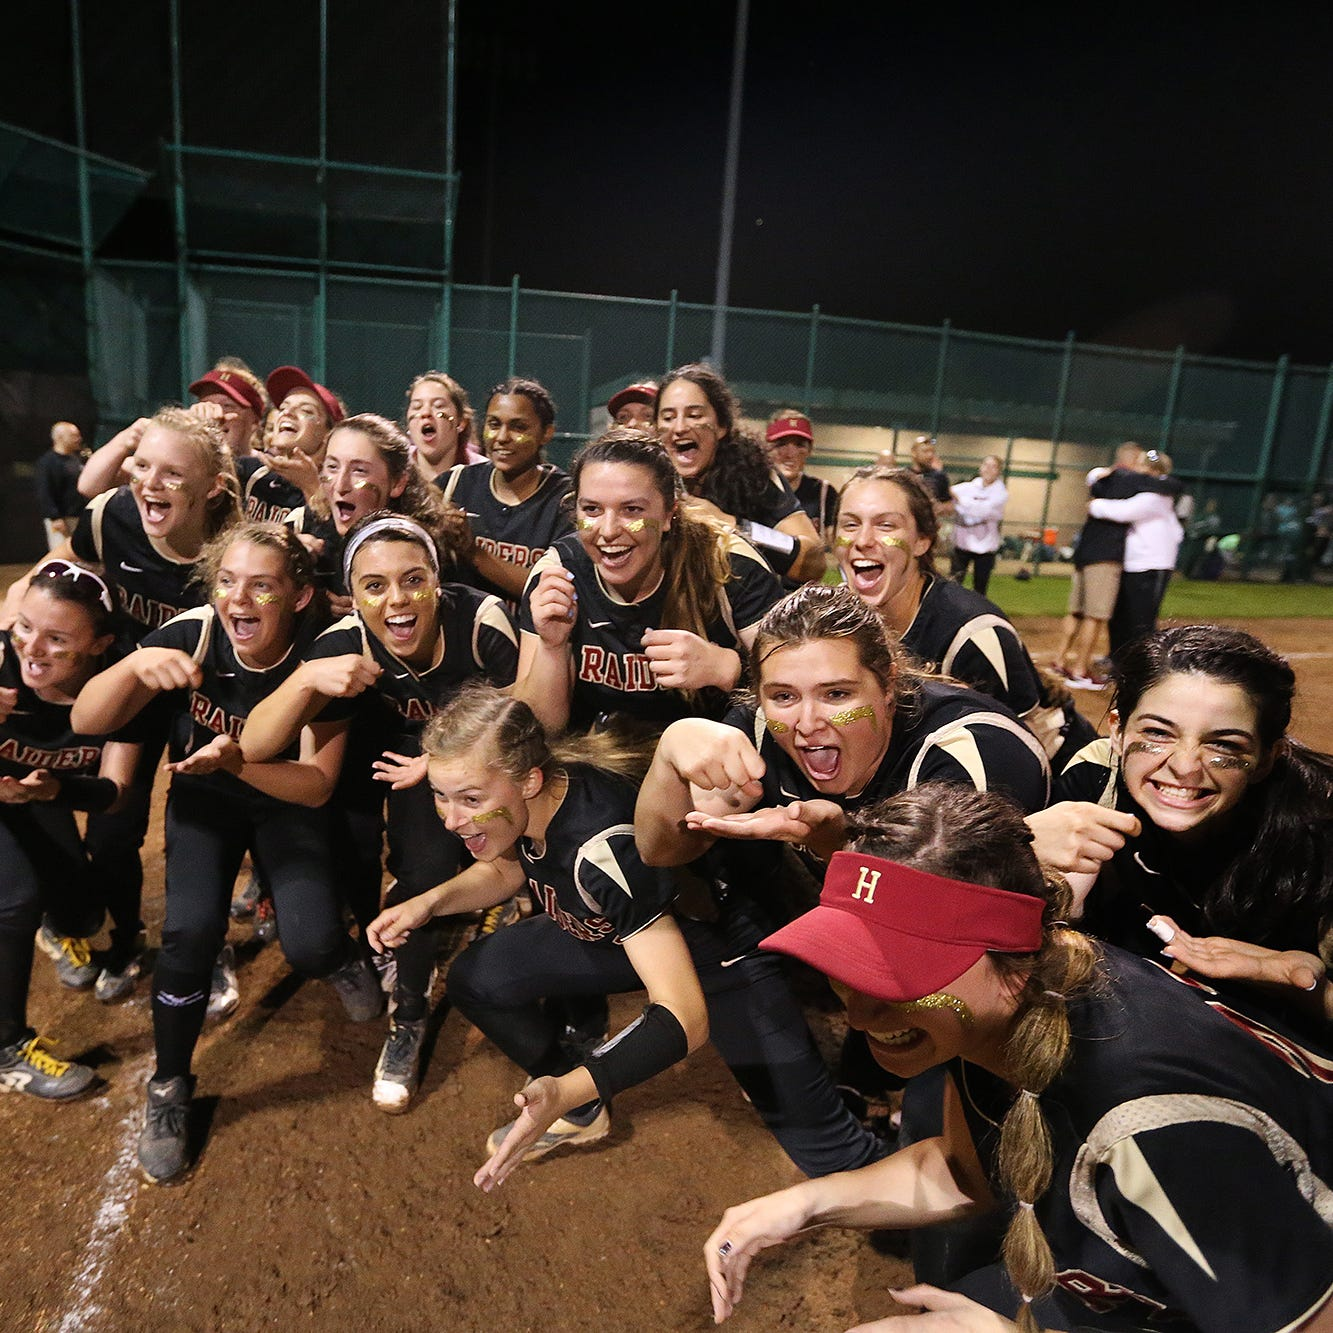 NJ SOFTBALL: Hillsborough jumps on Ridge early, runs away with Somerset County title